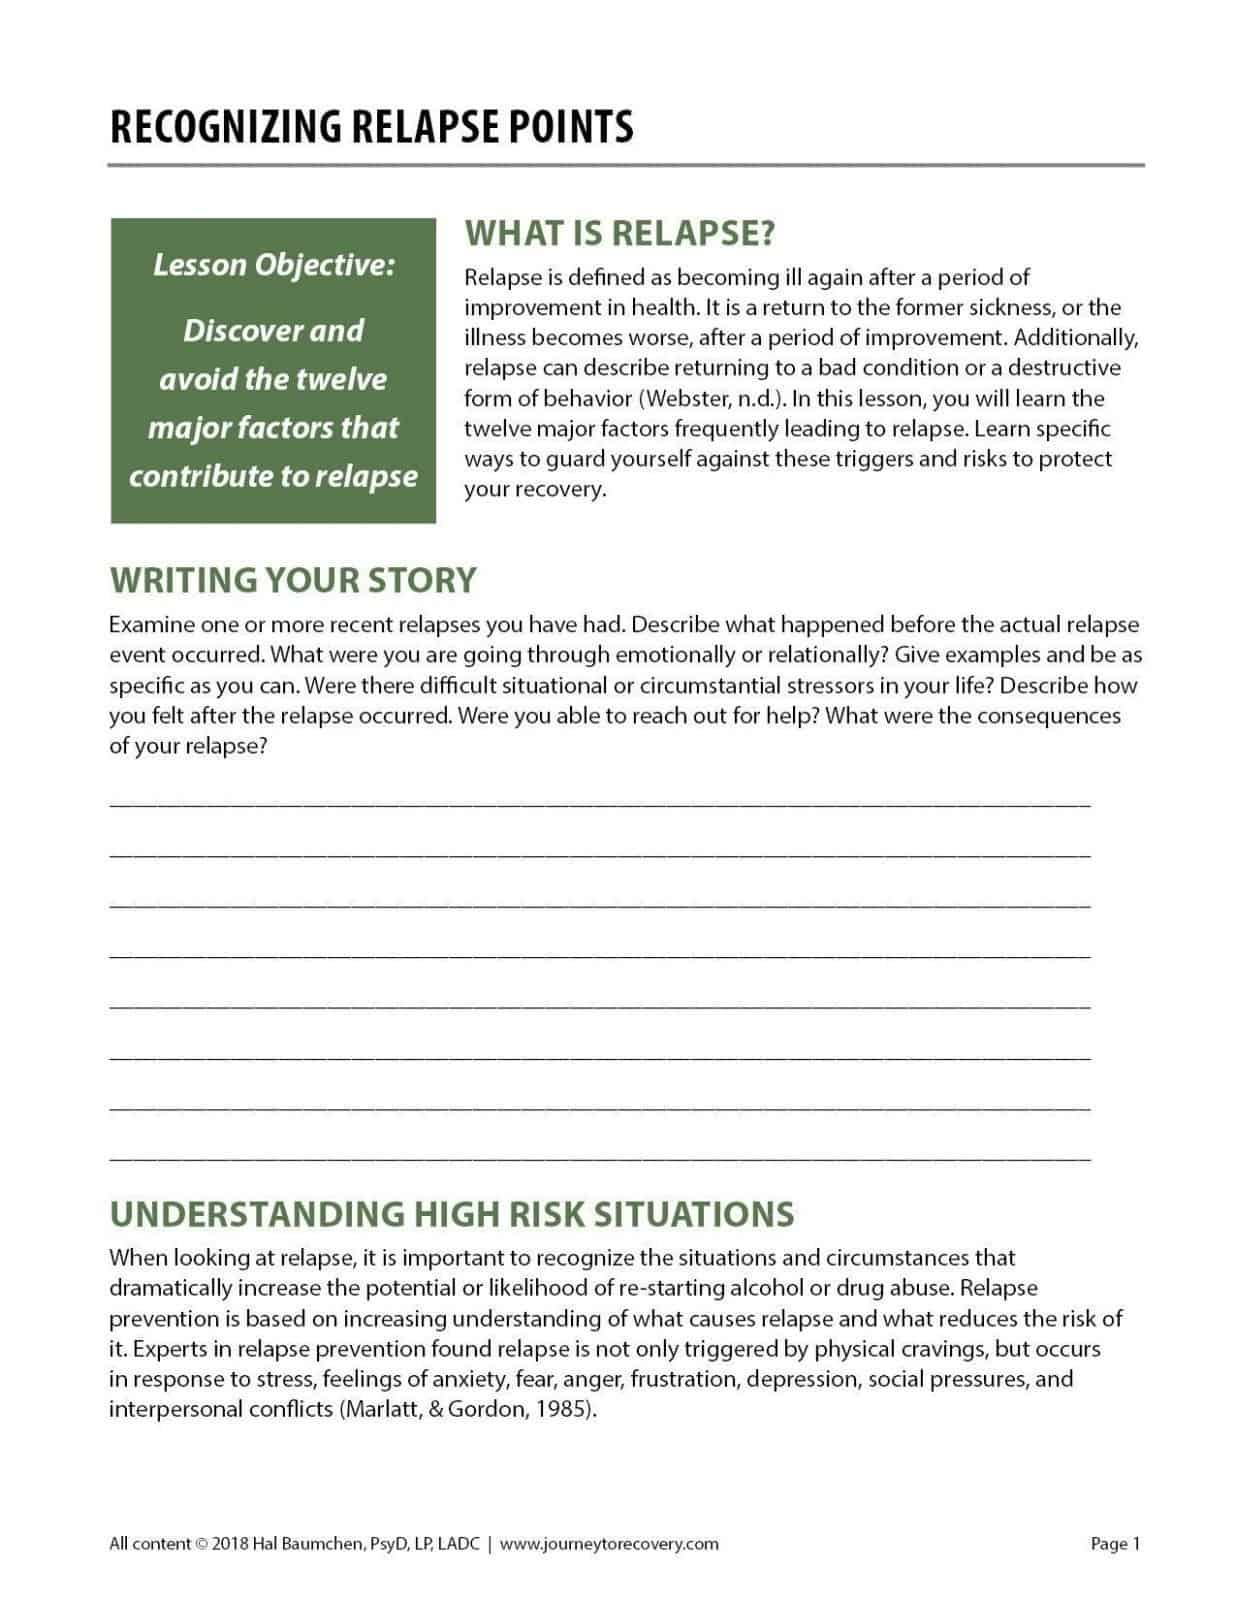 Recognizing Relapse Points Cod Worksheet